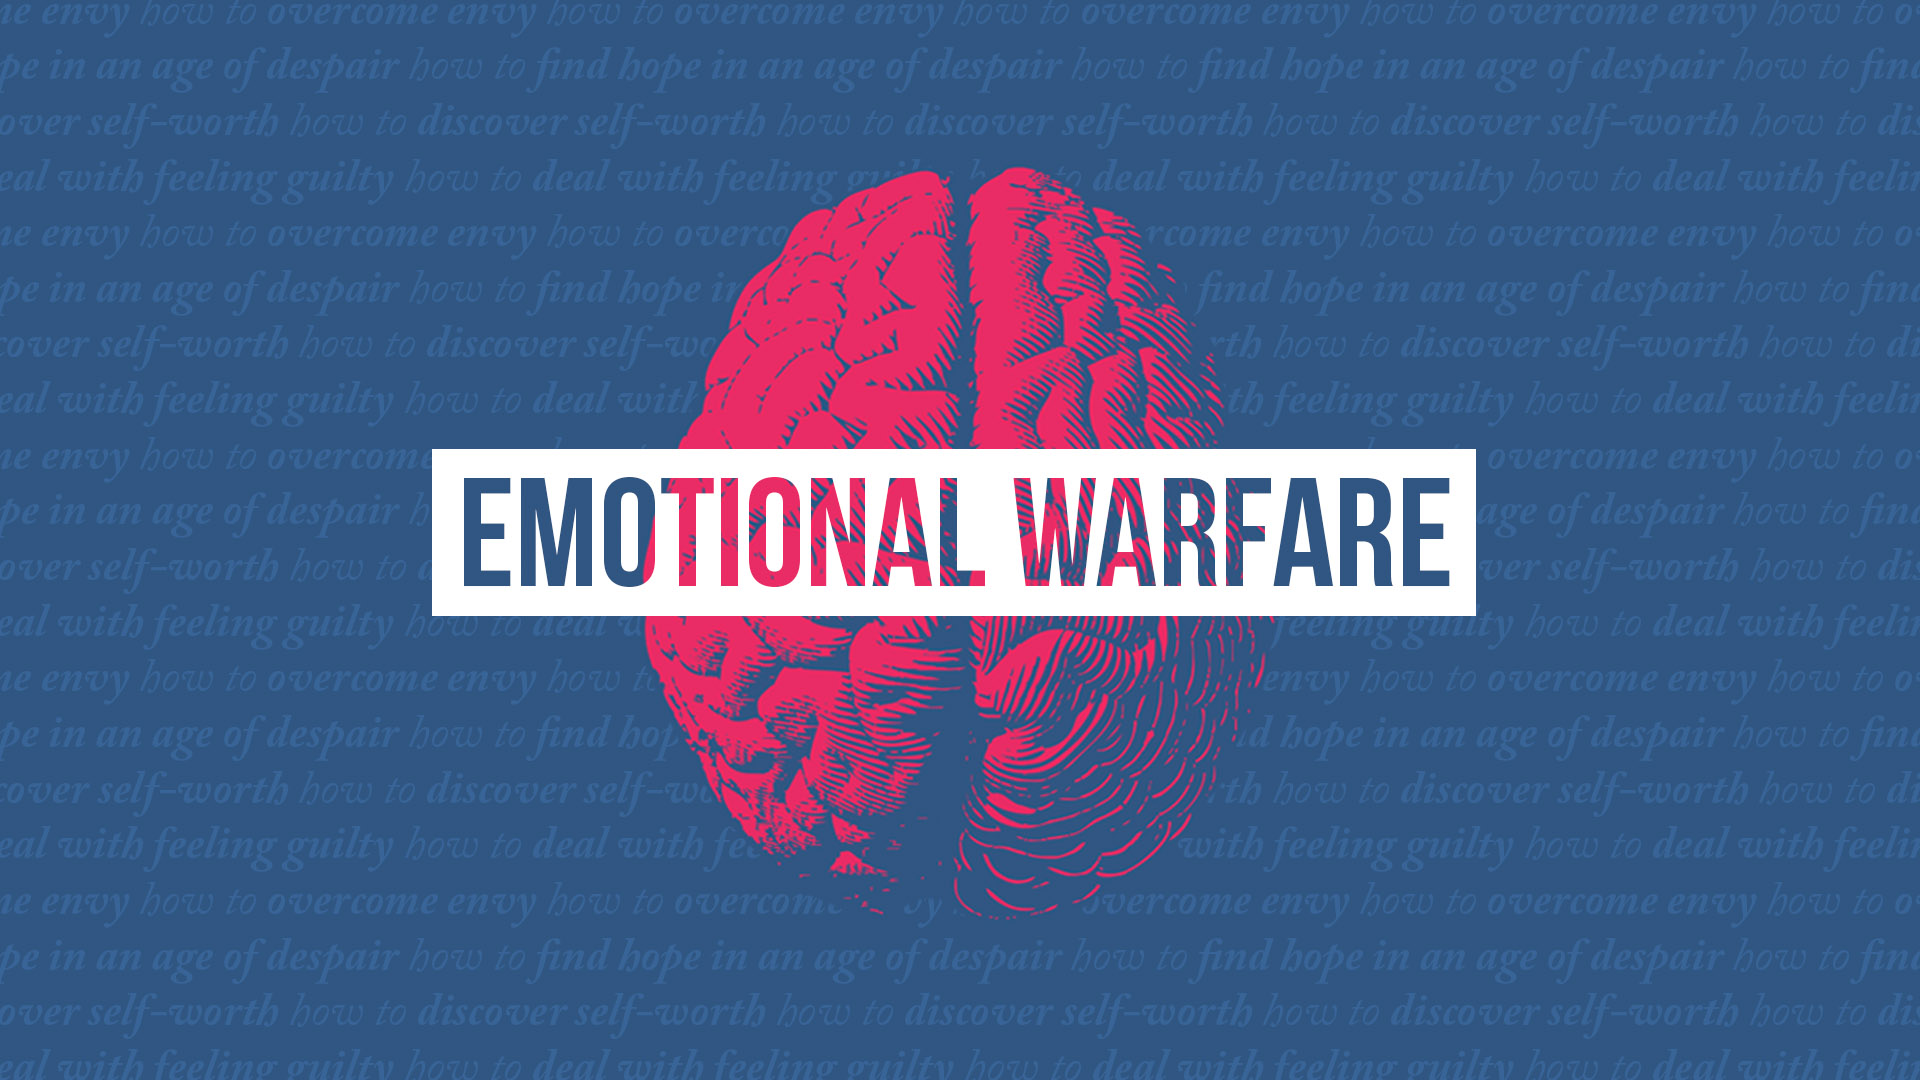 st-johns-harborne-sermon-series-emotional-warfare-web.jpg